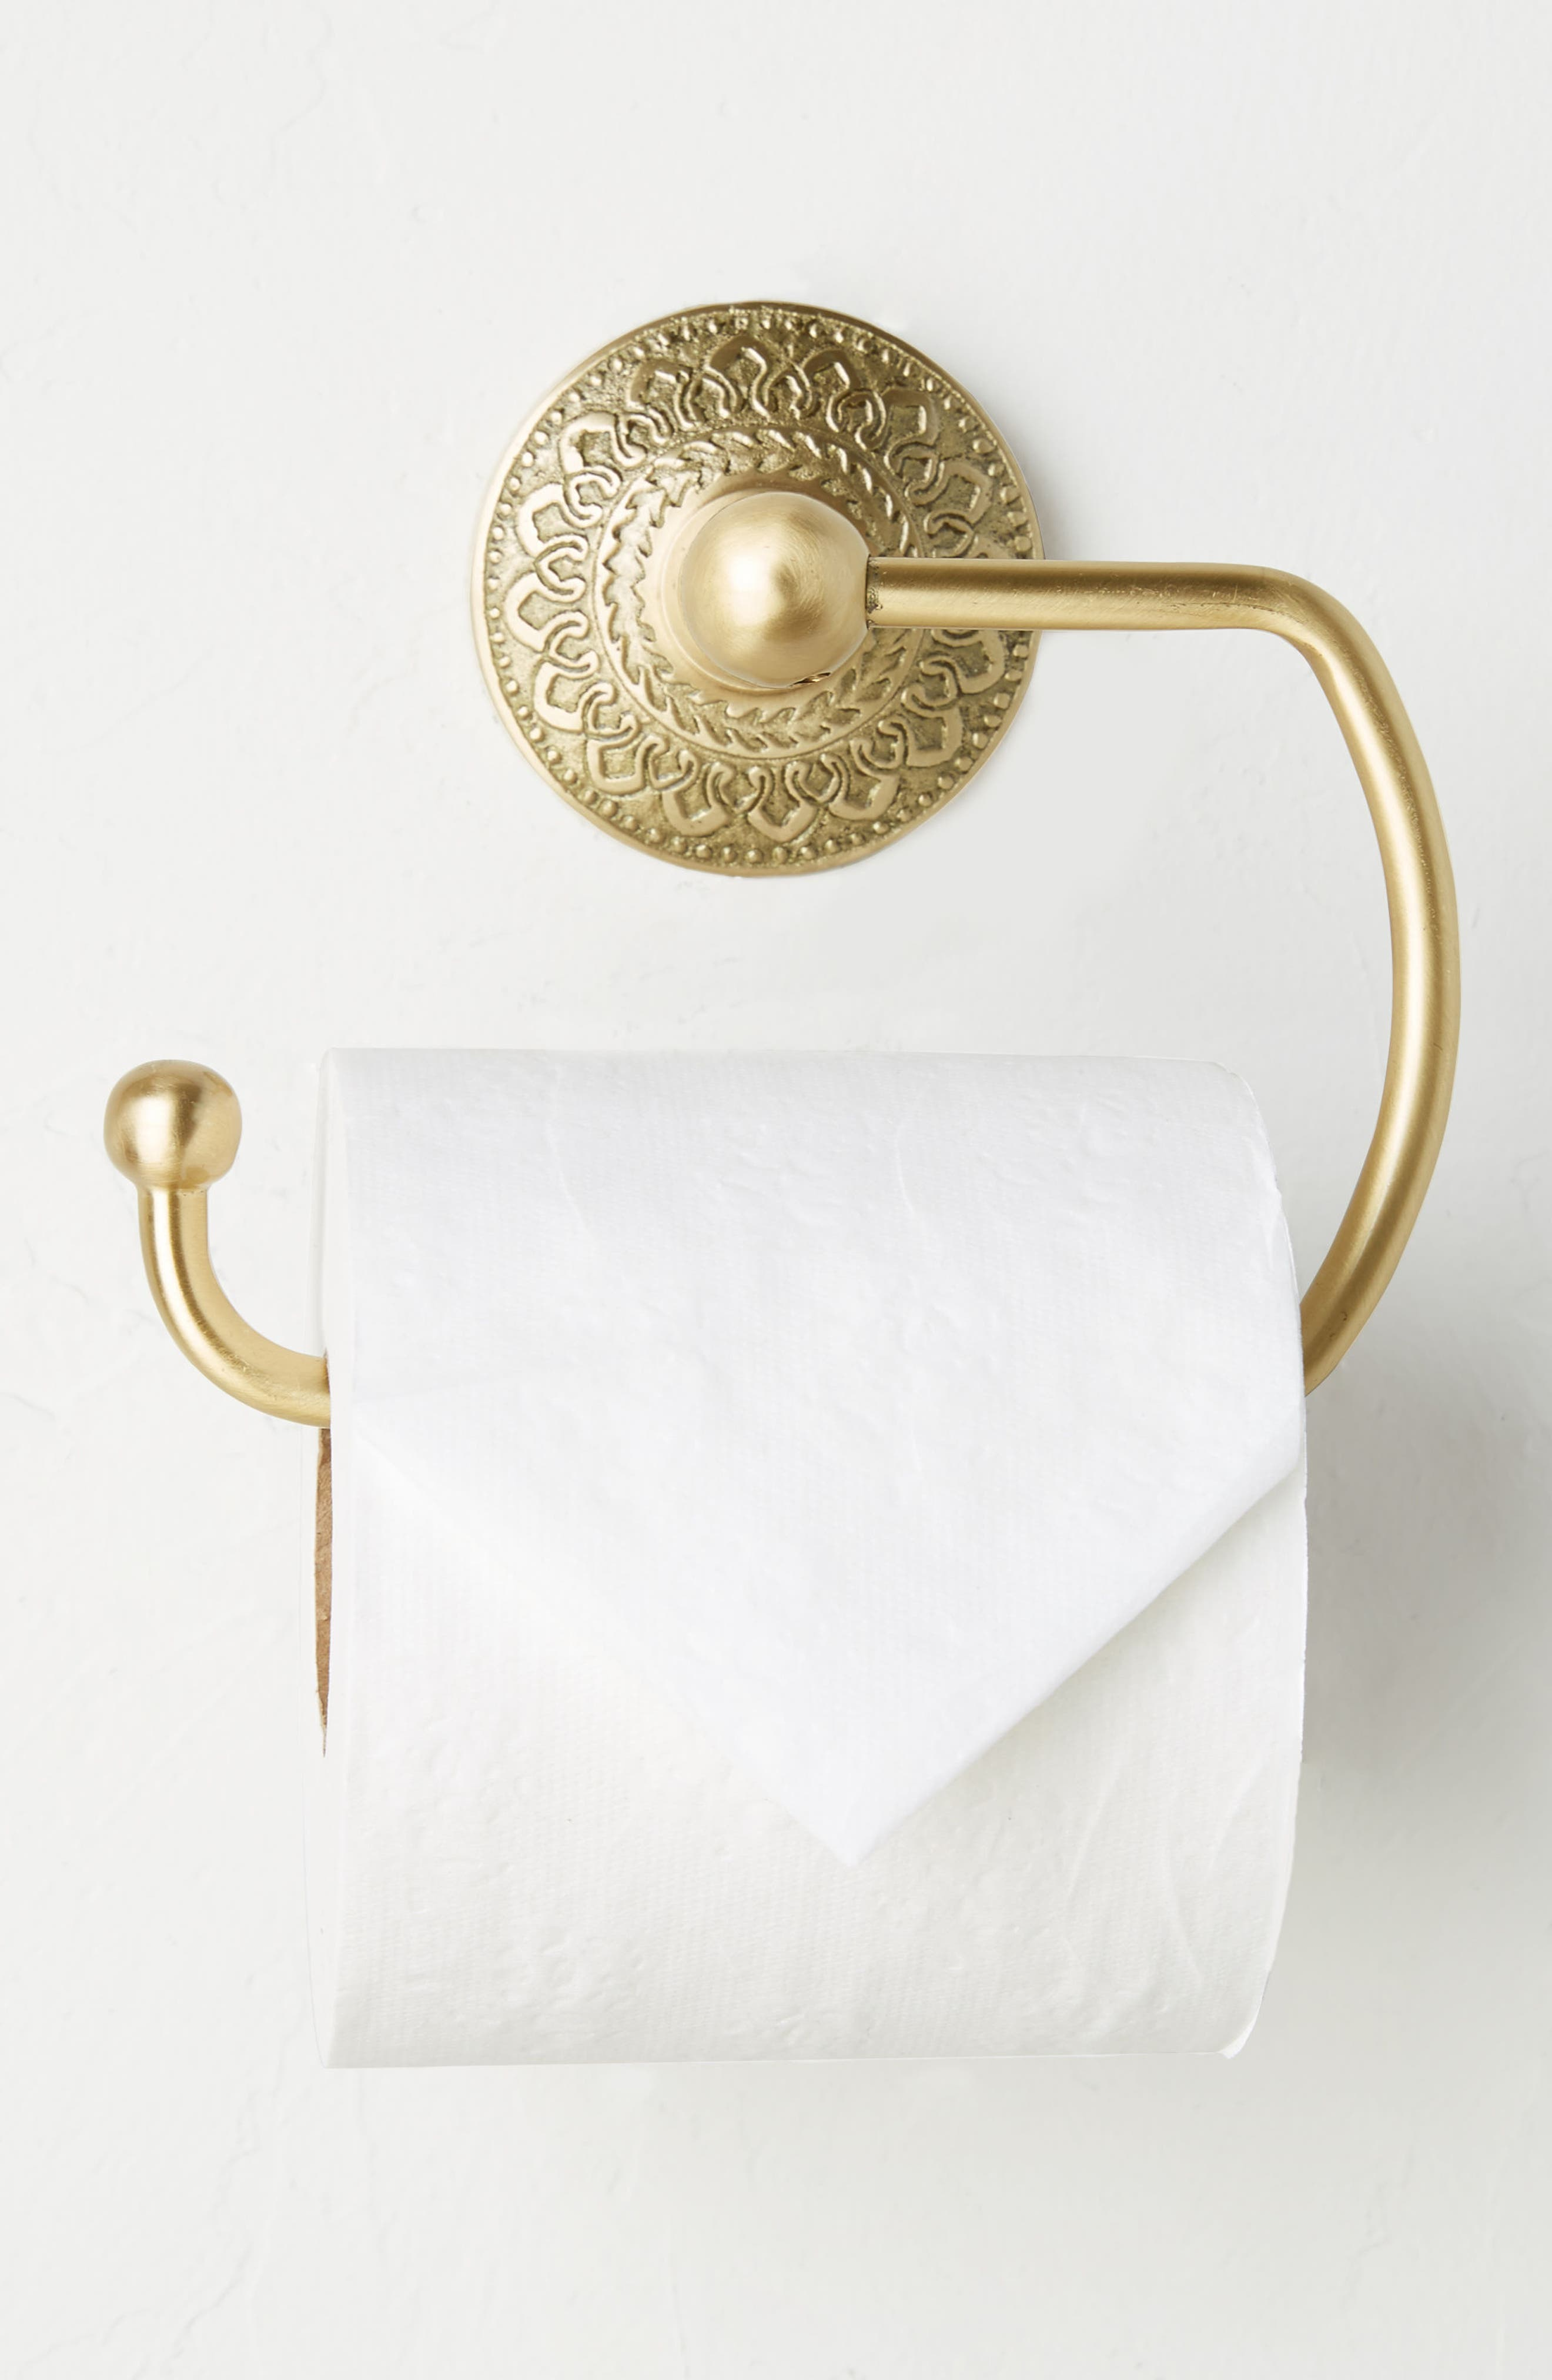 Brass Medallion Toilet Paper Holder,                             Alternate thumbnail 2, color,                             710